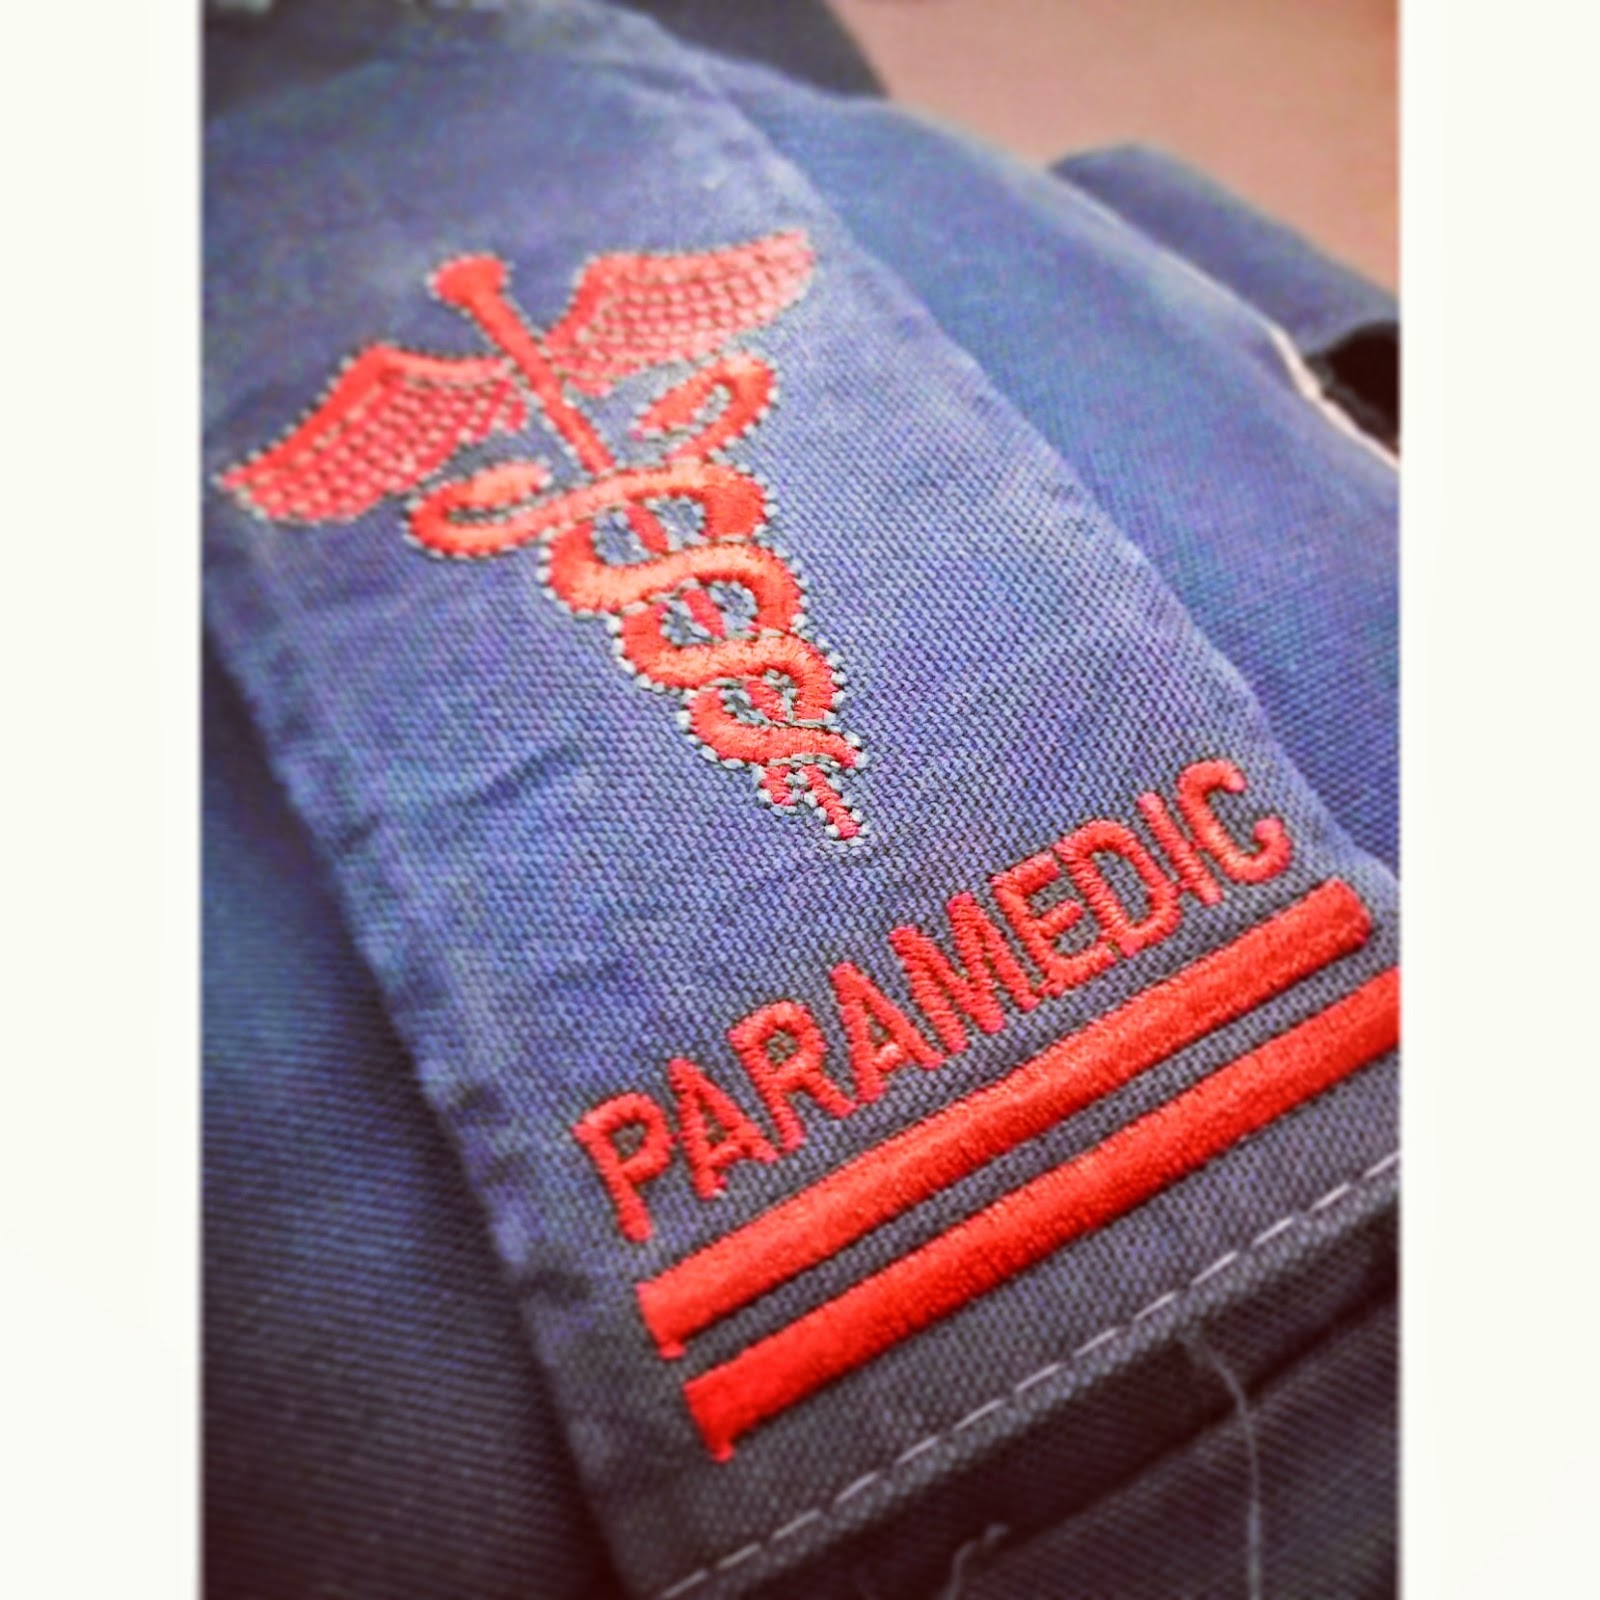 As a Paramedic I am often told 'I could never do your job.' Jus like any other occupation, I have good days and bad days. In this job however the bad days are horrendous but the good days are what keeps me coming back for more.